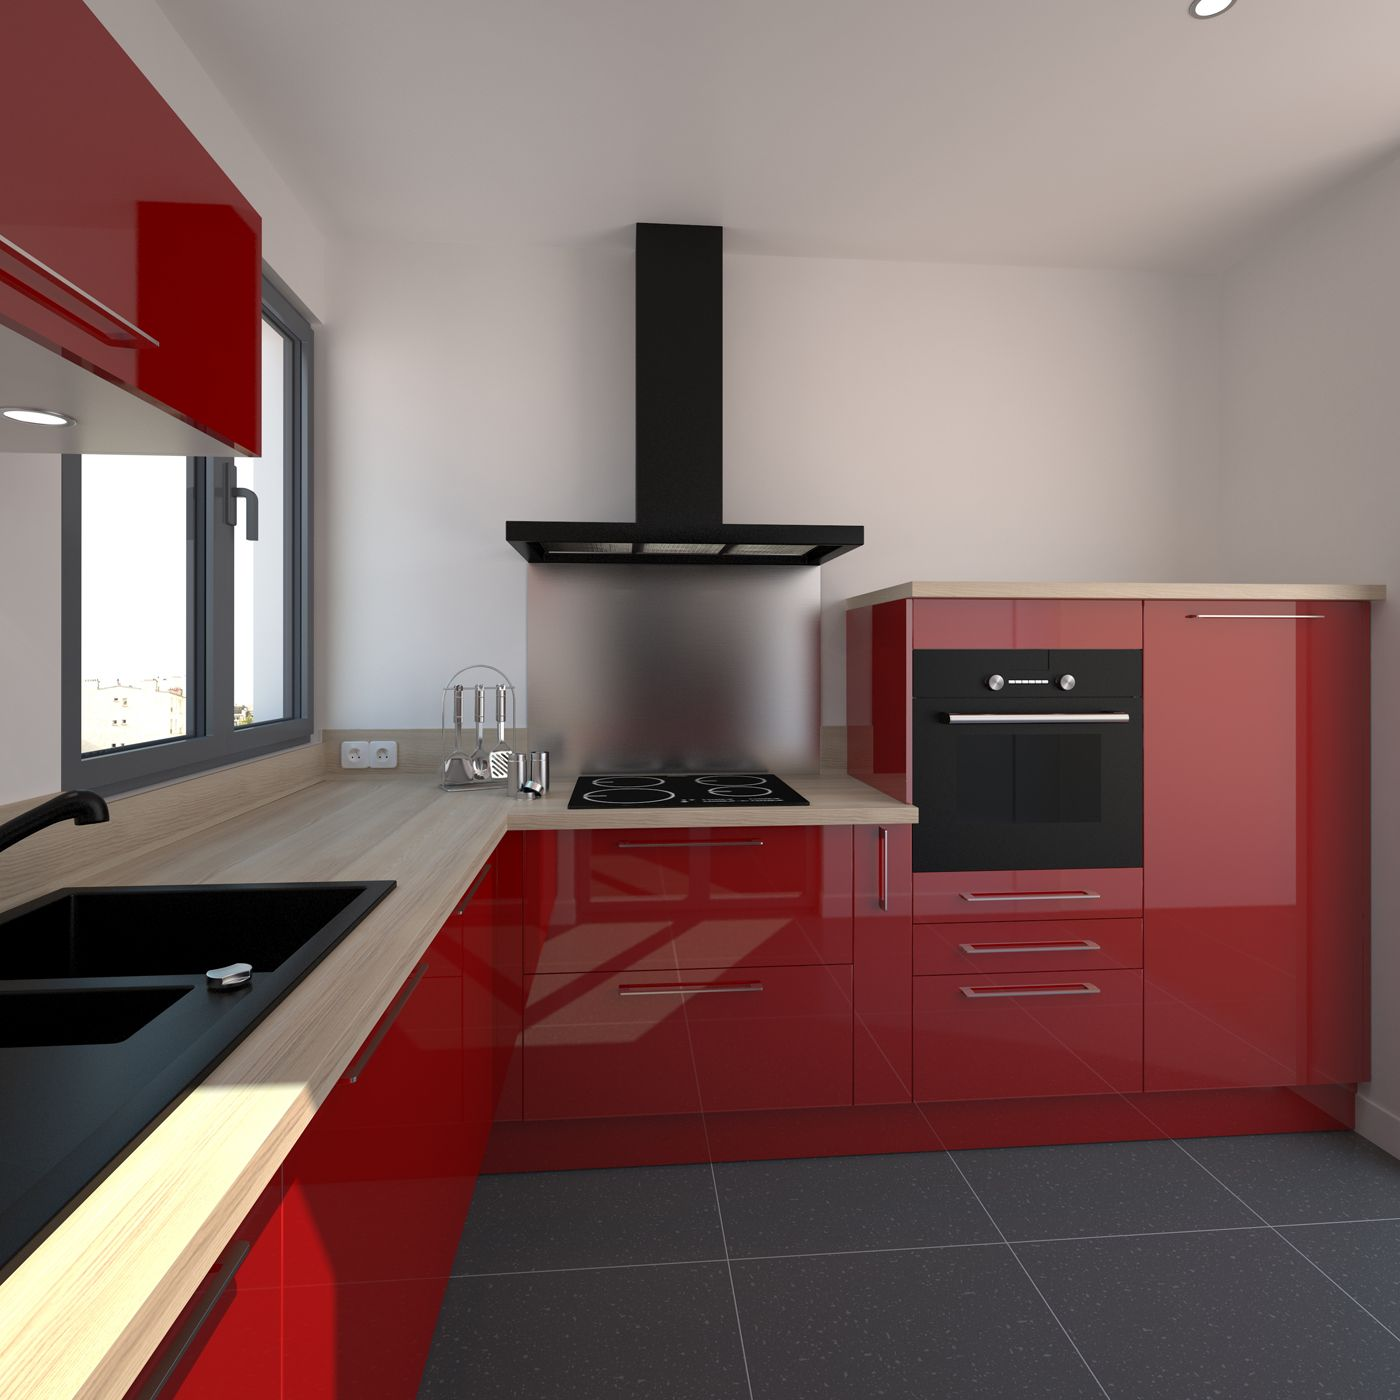 Cuisine rouge moderne fa ade stecia rouge brillant for Cuisine rouge